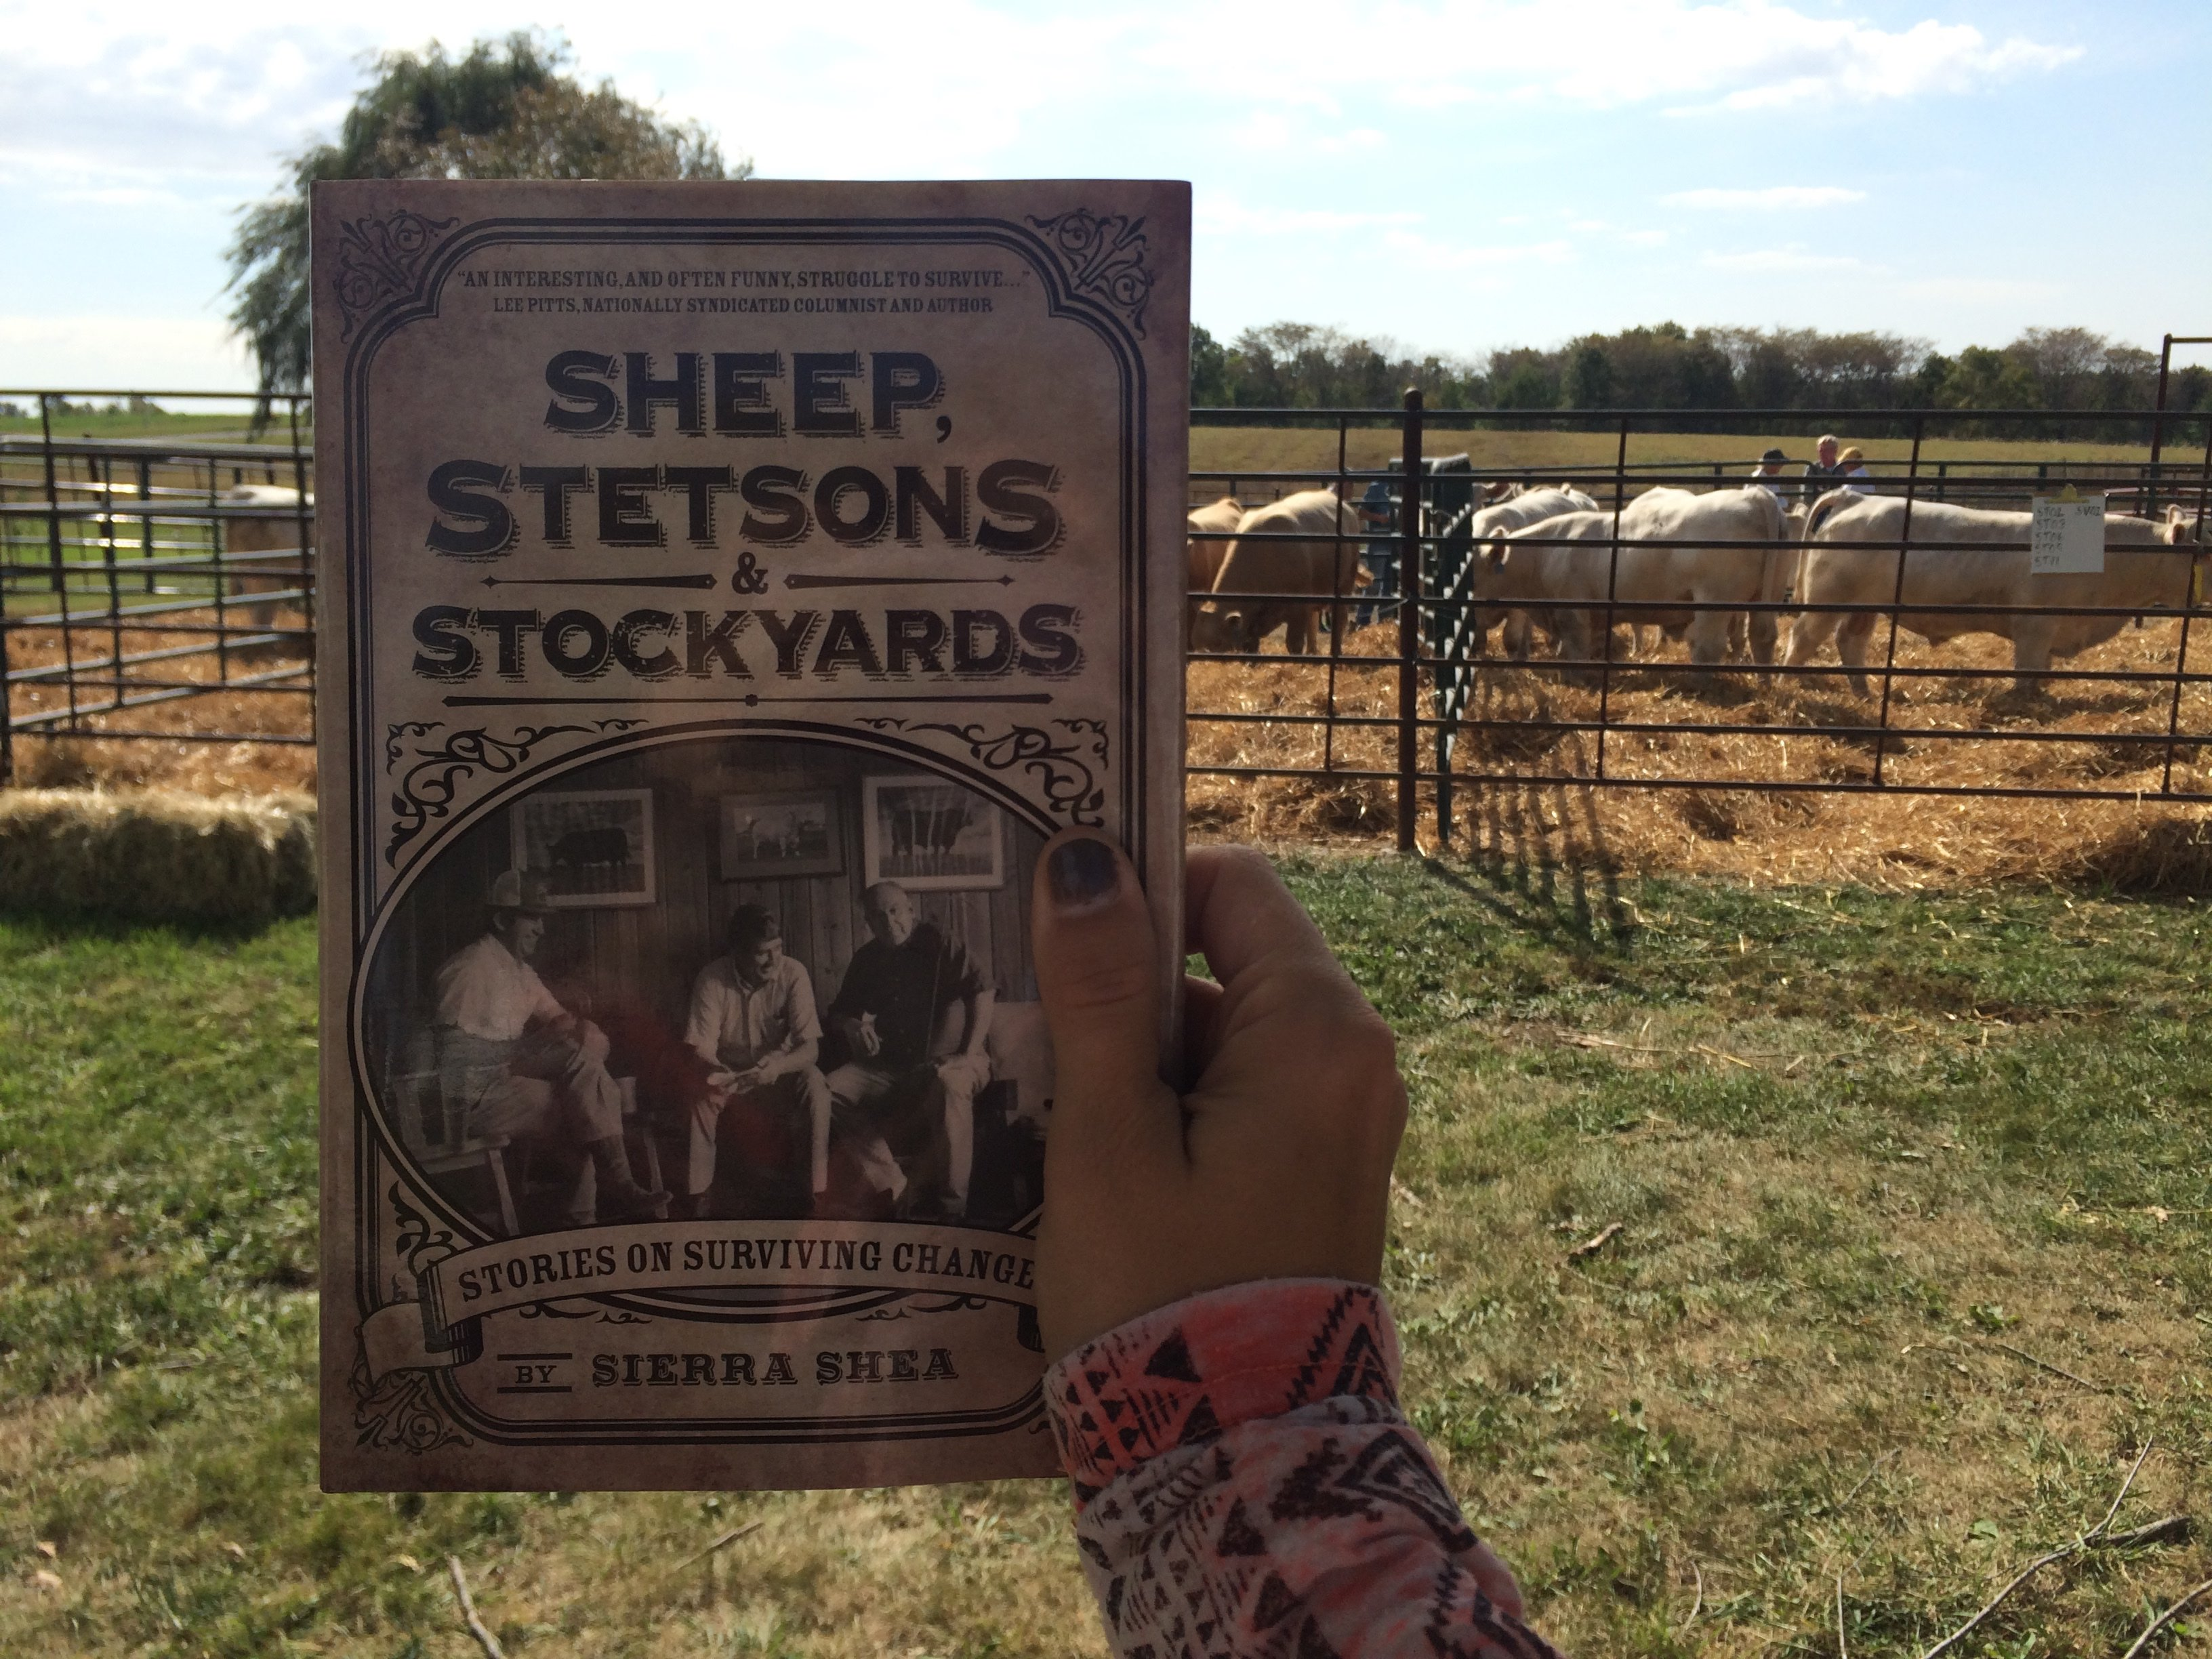 Last round :: Advance Praise for Sheep, Stetsons & Stockyards